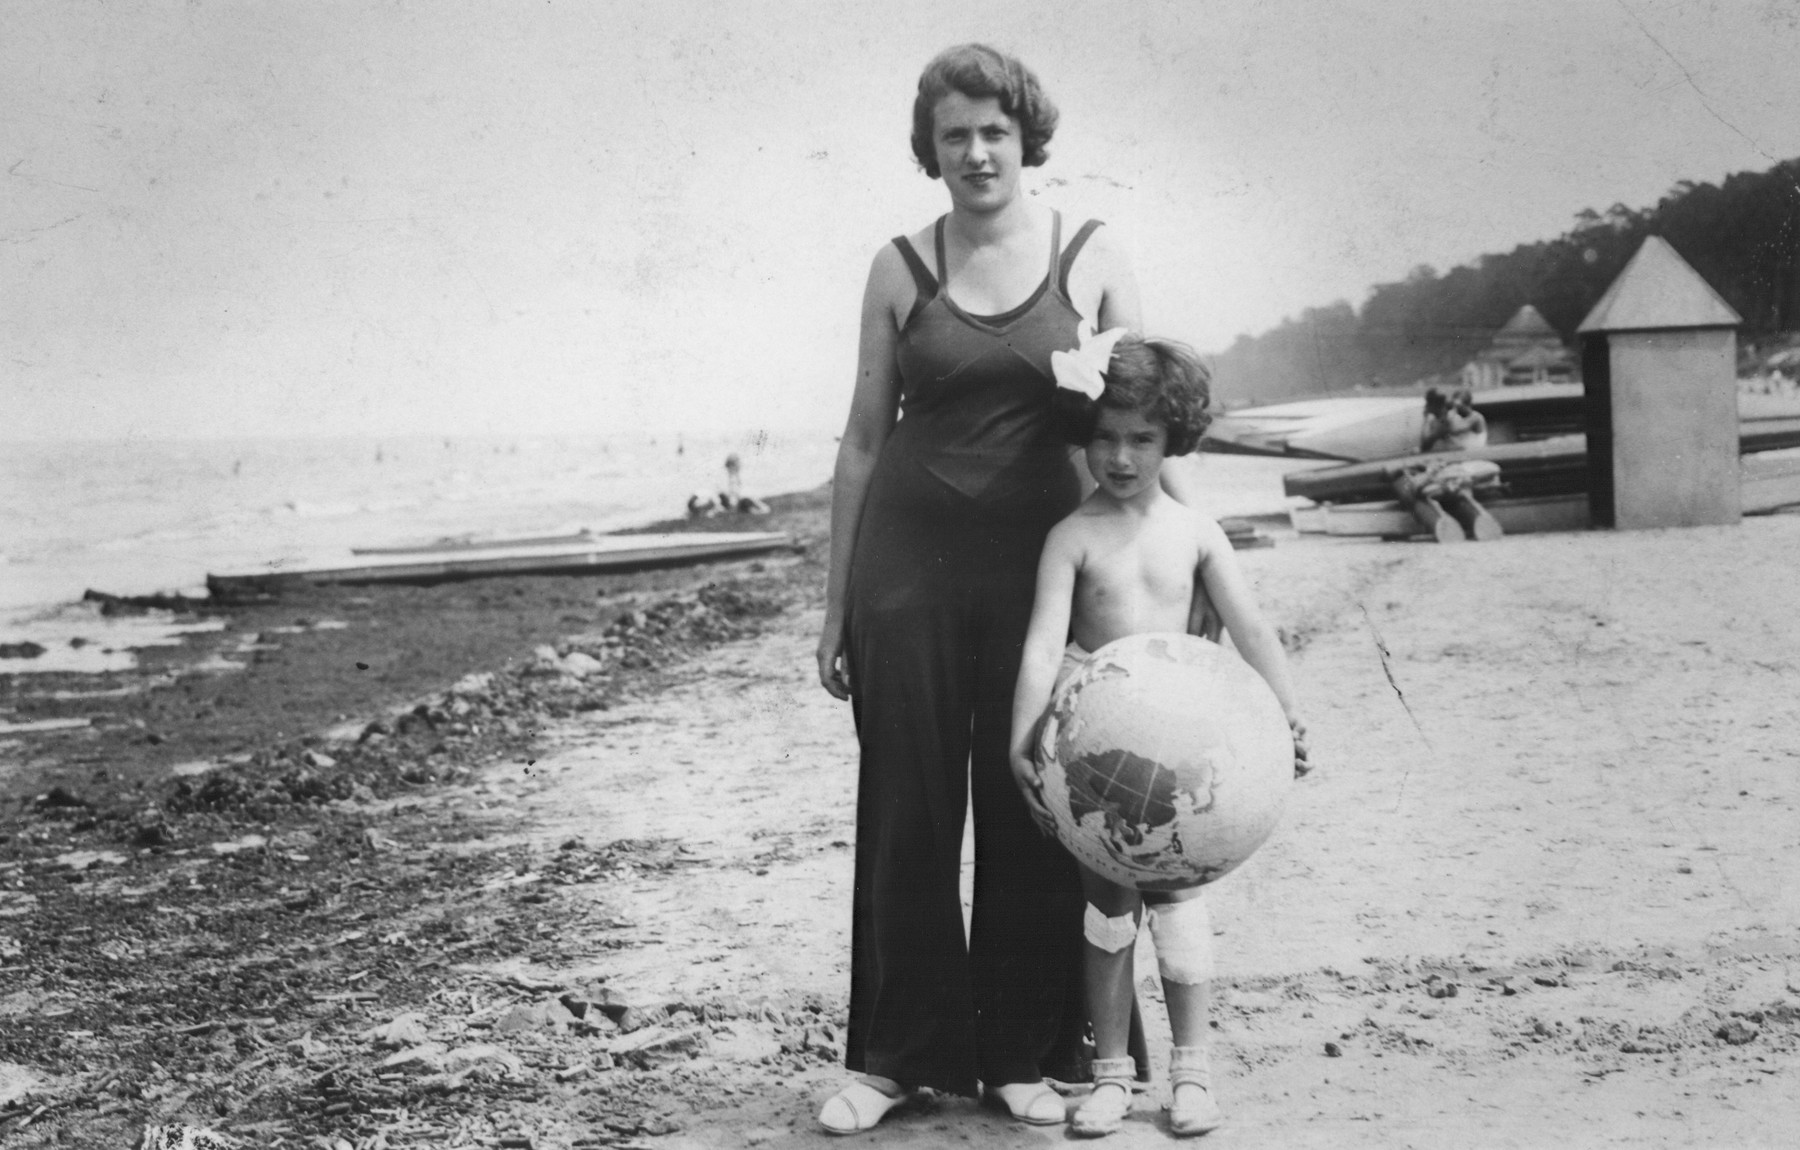 A young Jewish child holding a beach ball painted like a globe, poses with her mother on a beach near Vilna.   Pictured are Mira Jedwabnik and her mother, Lydia.